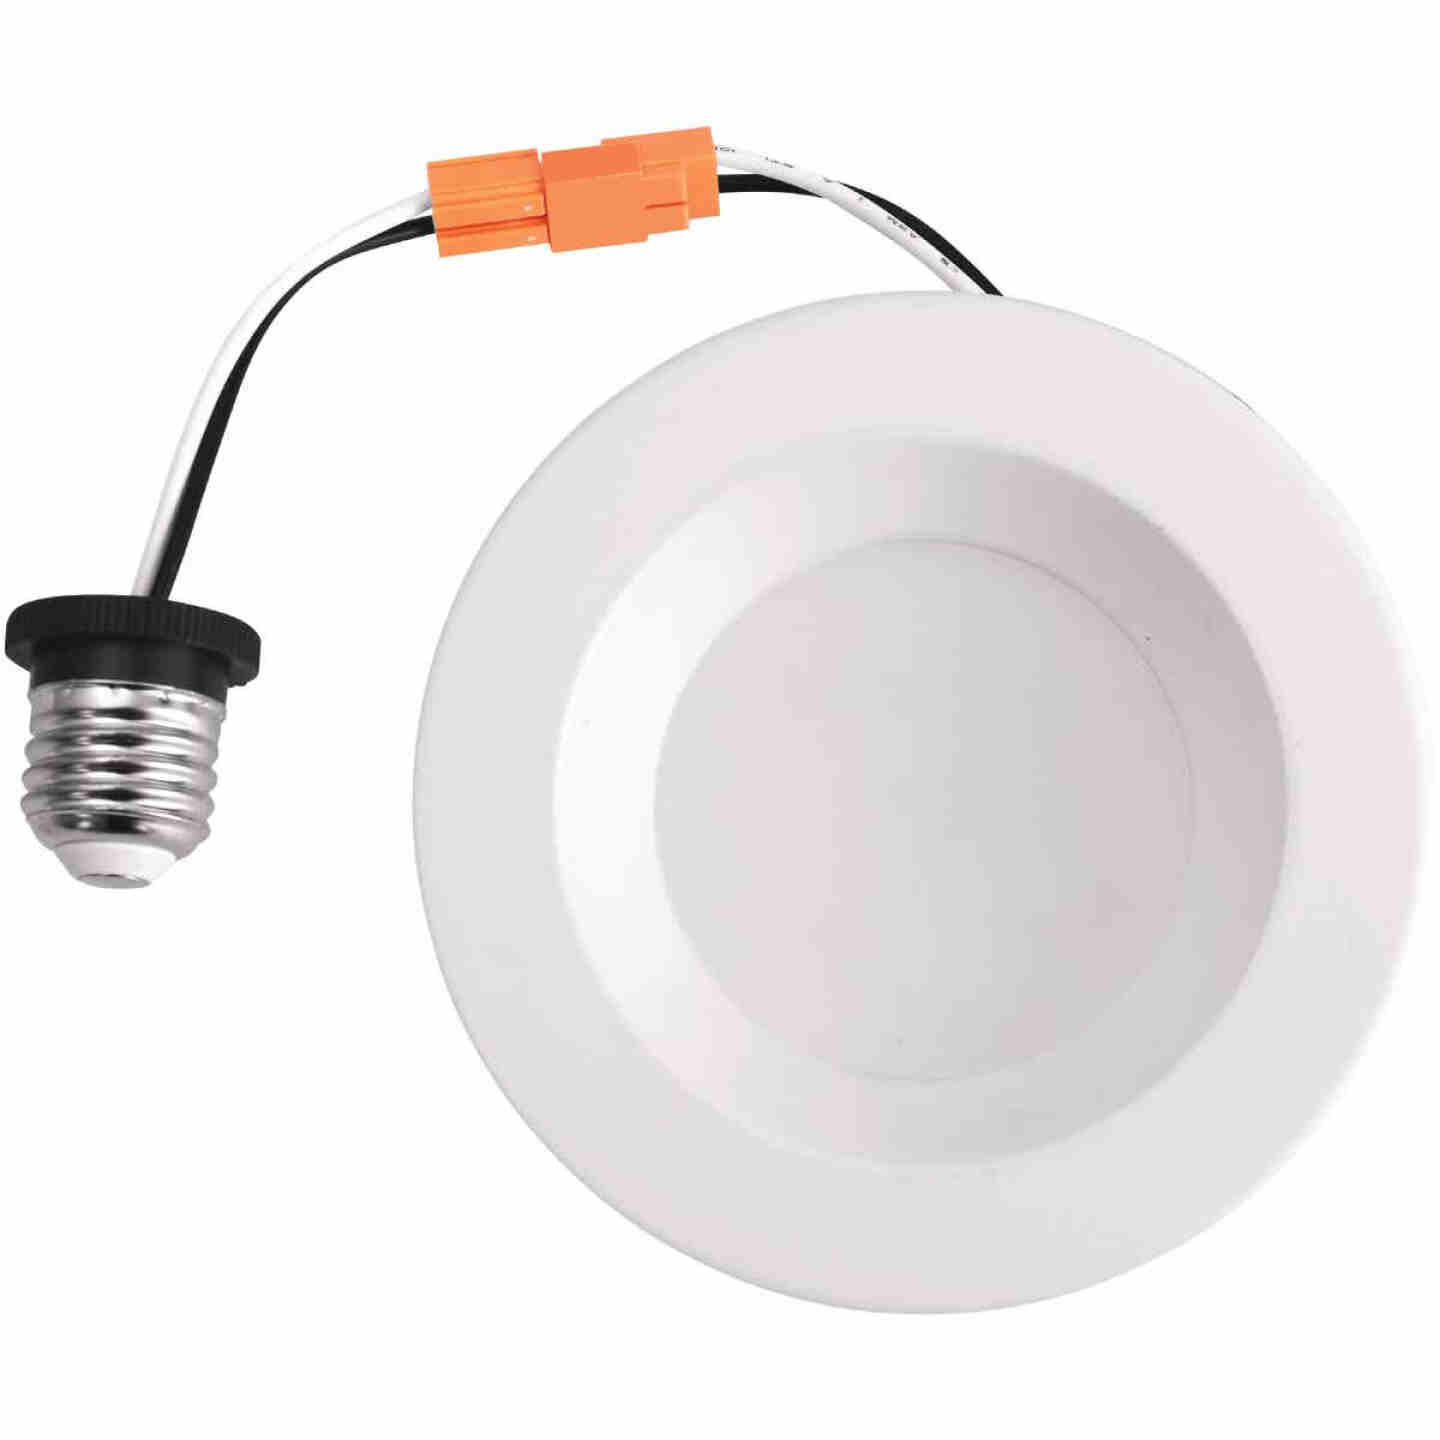 4 In. Retrofit IC Rated White LED CCT Tunable Down Light with Baffle Trim Image 6